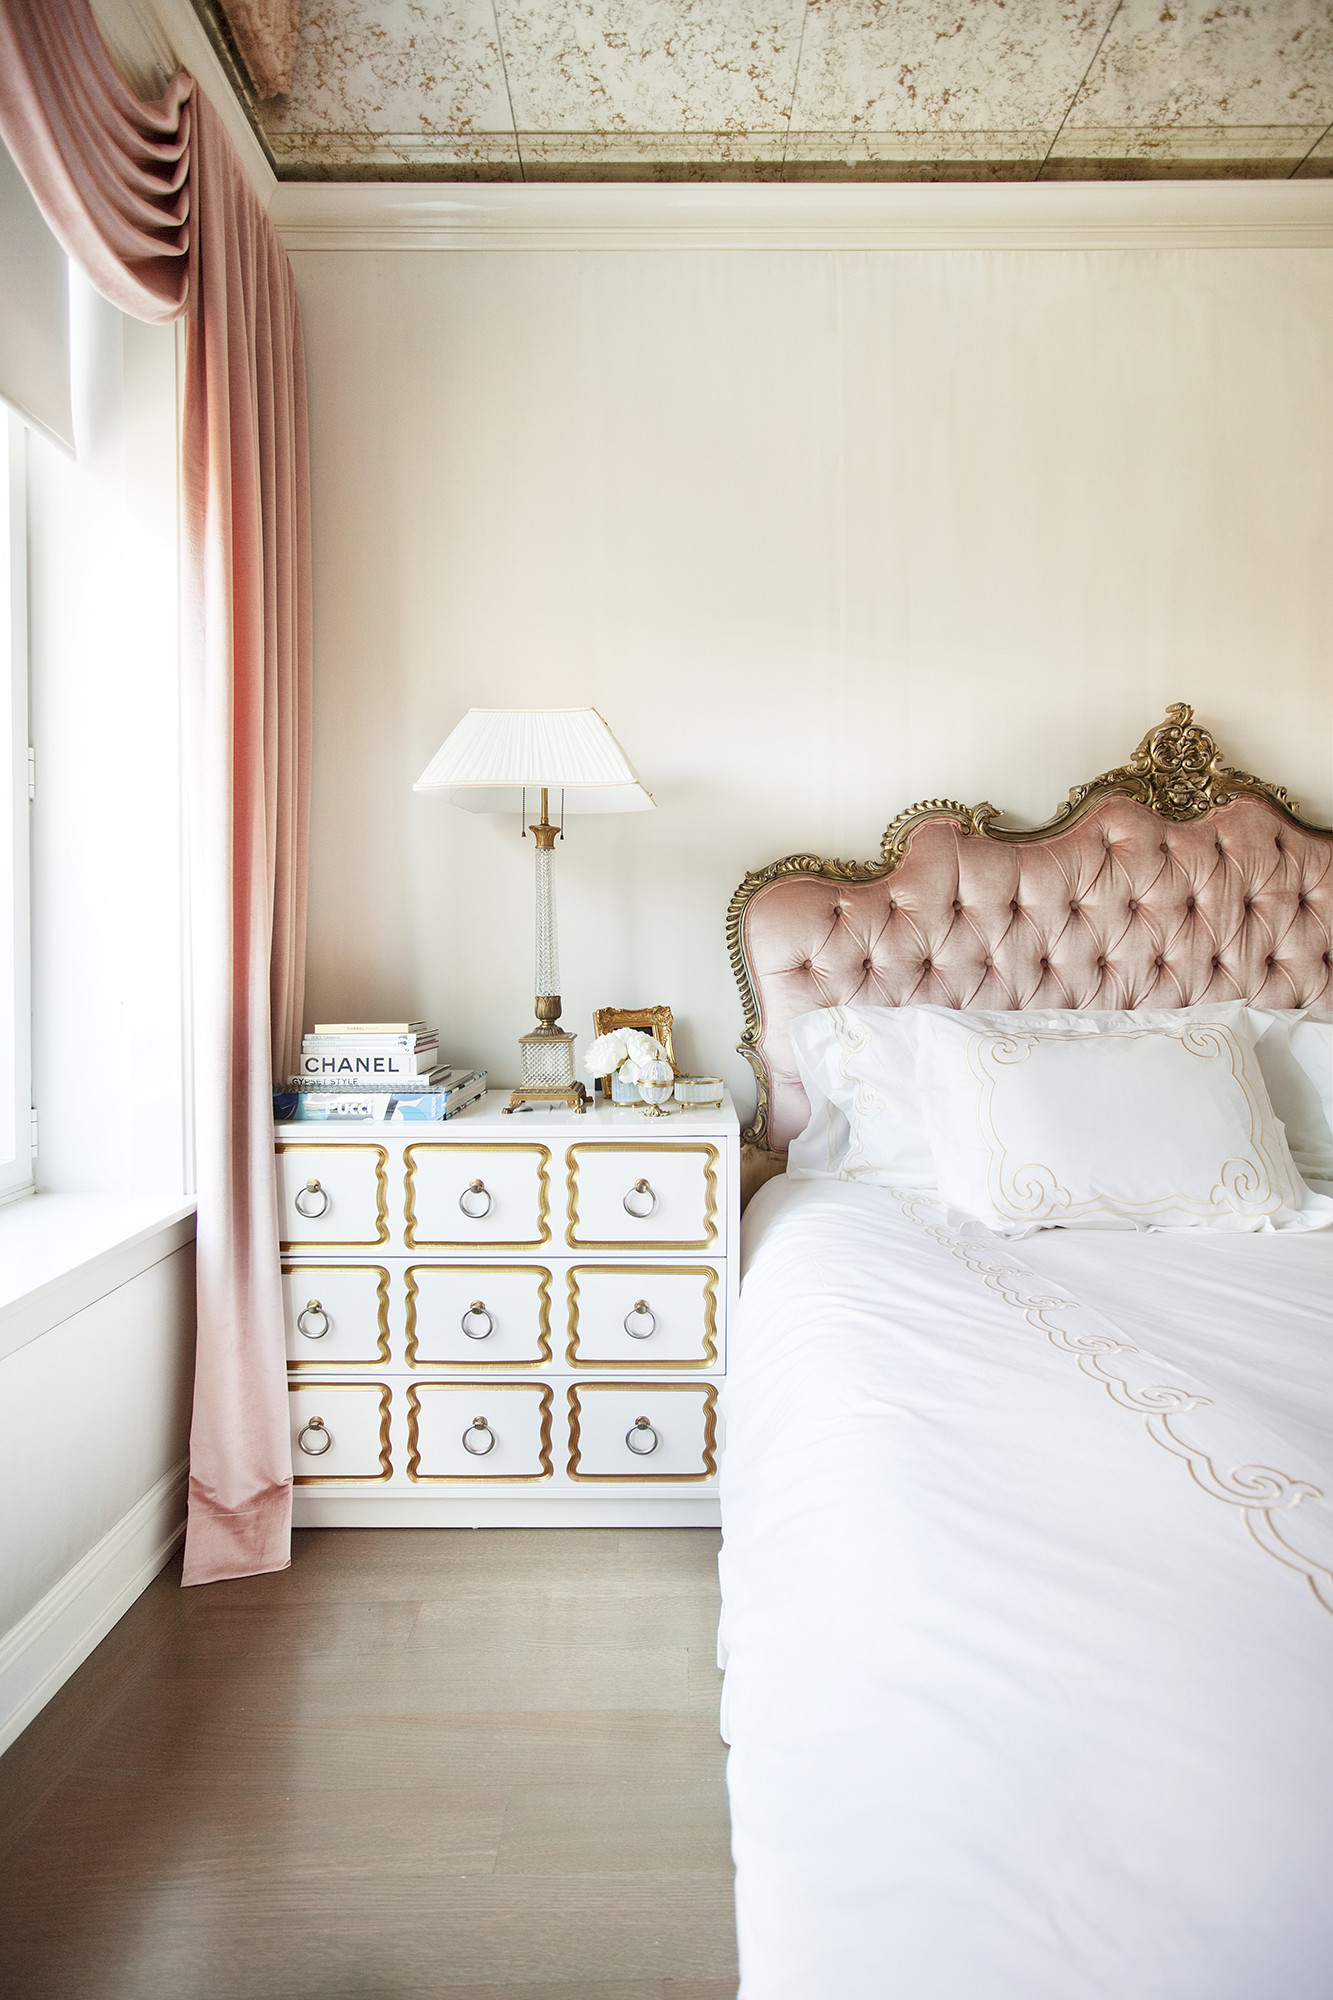 Blush-pink silk velvet is used for the headboard and drapery.